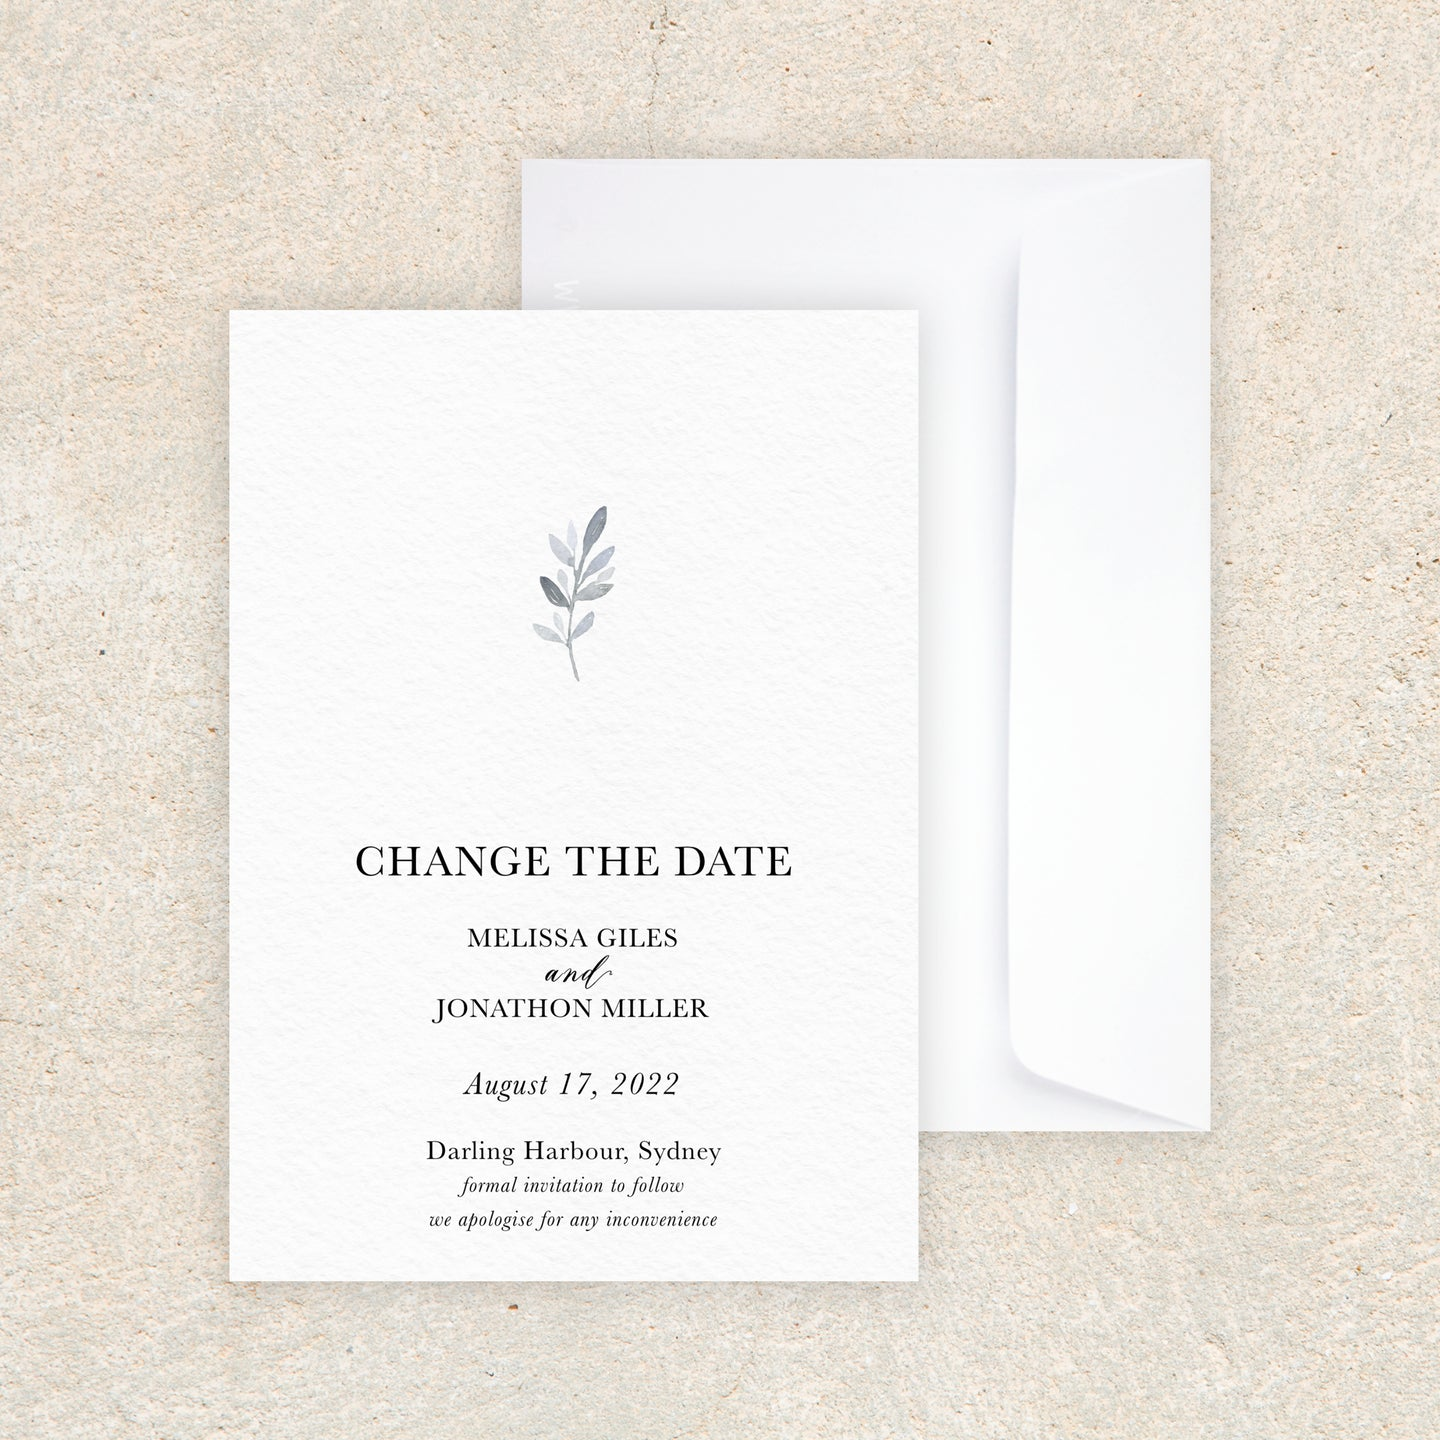 Elegance Change The Date Card